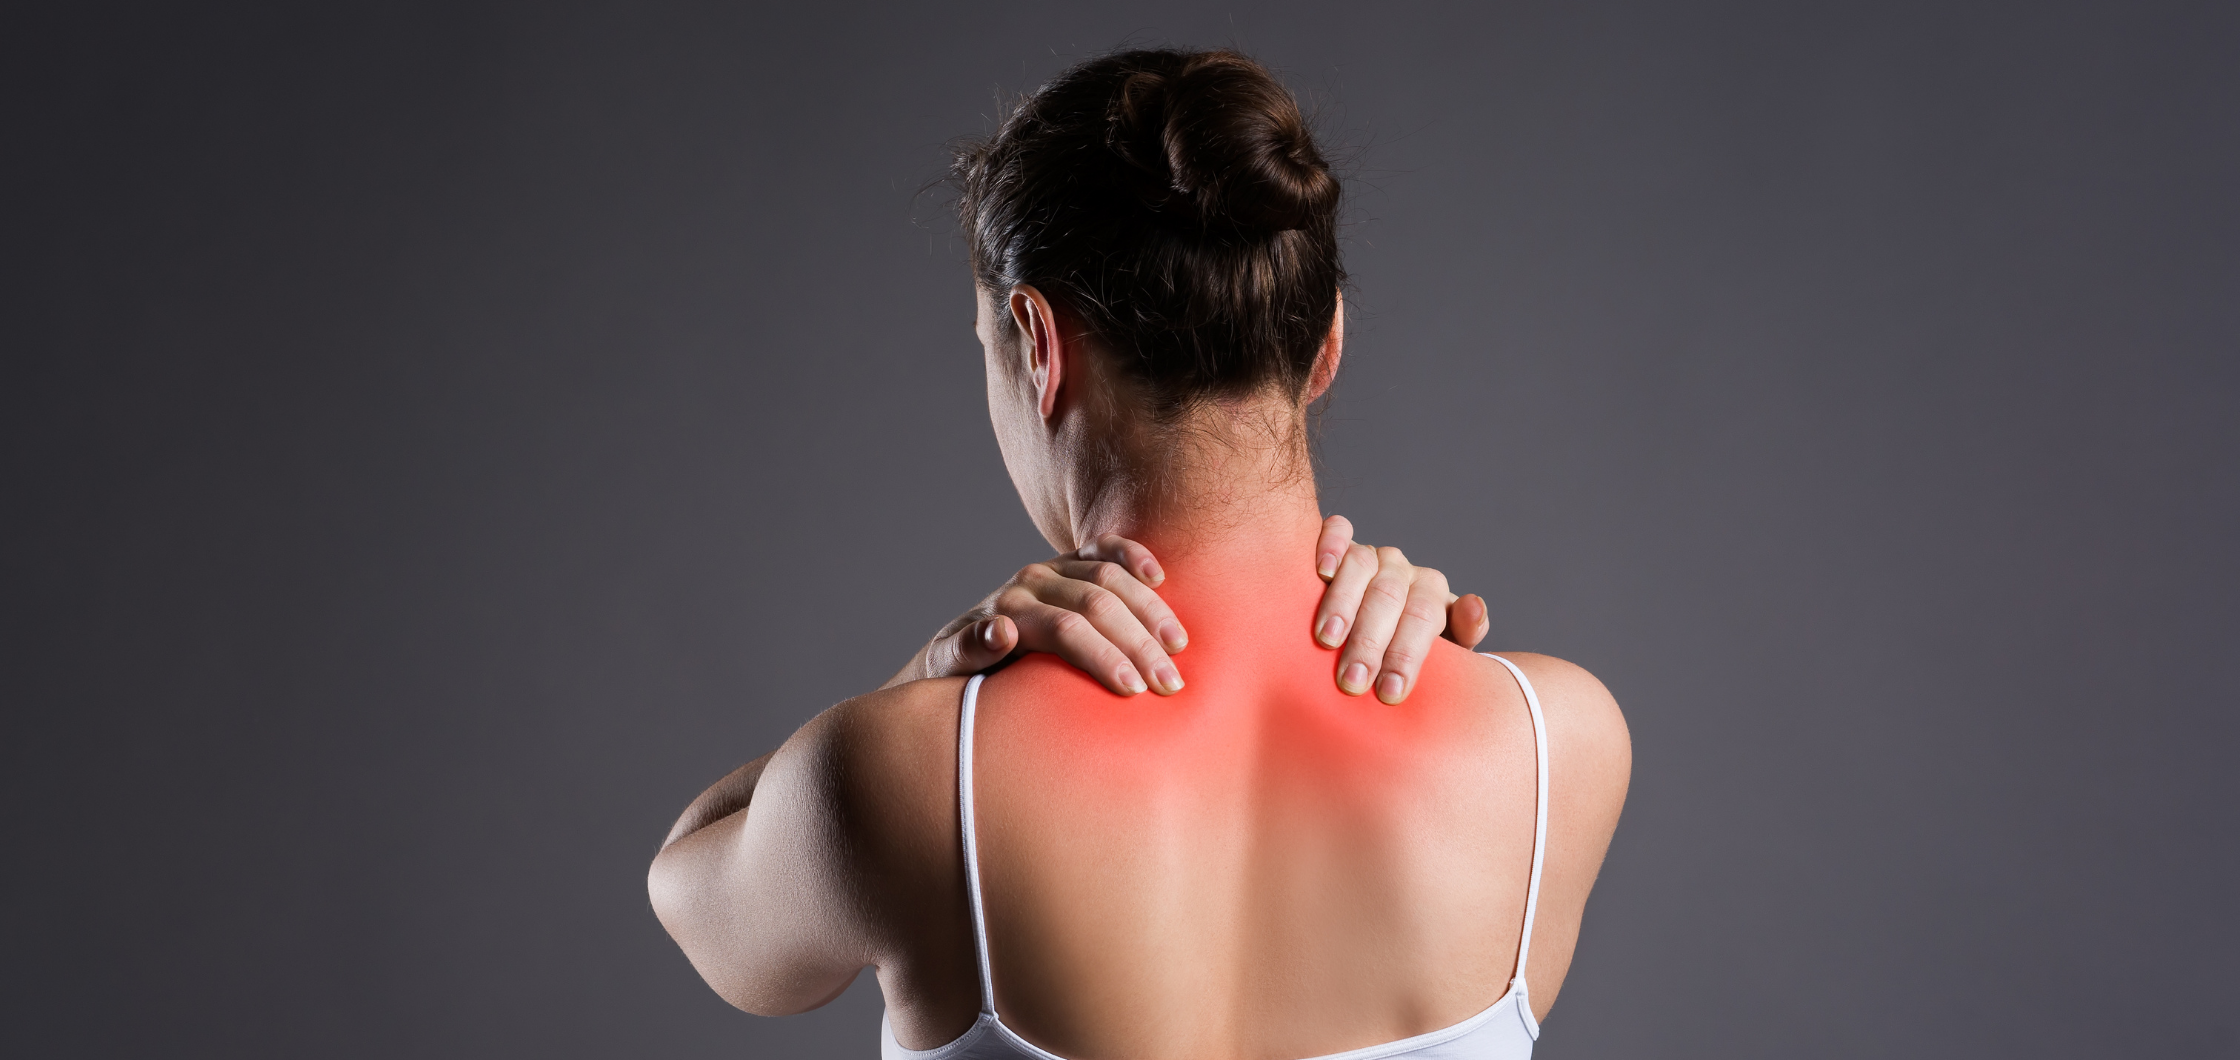 Do you hold your stress in your shoulders and neck?